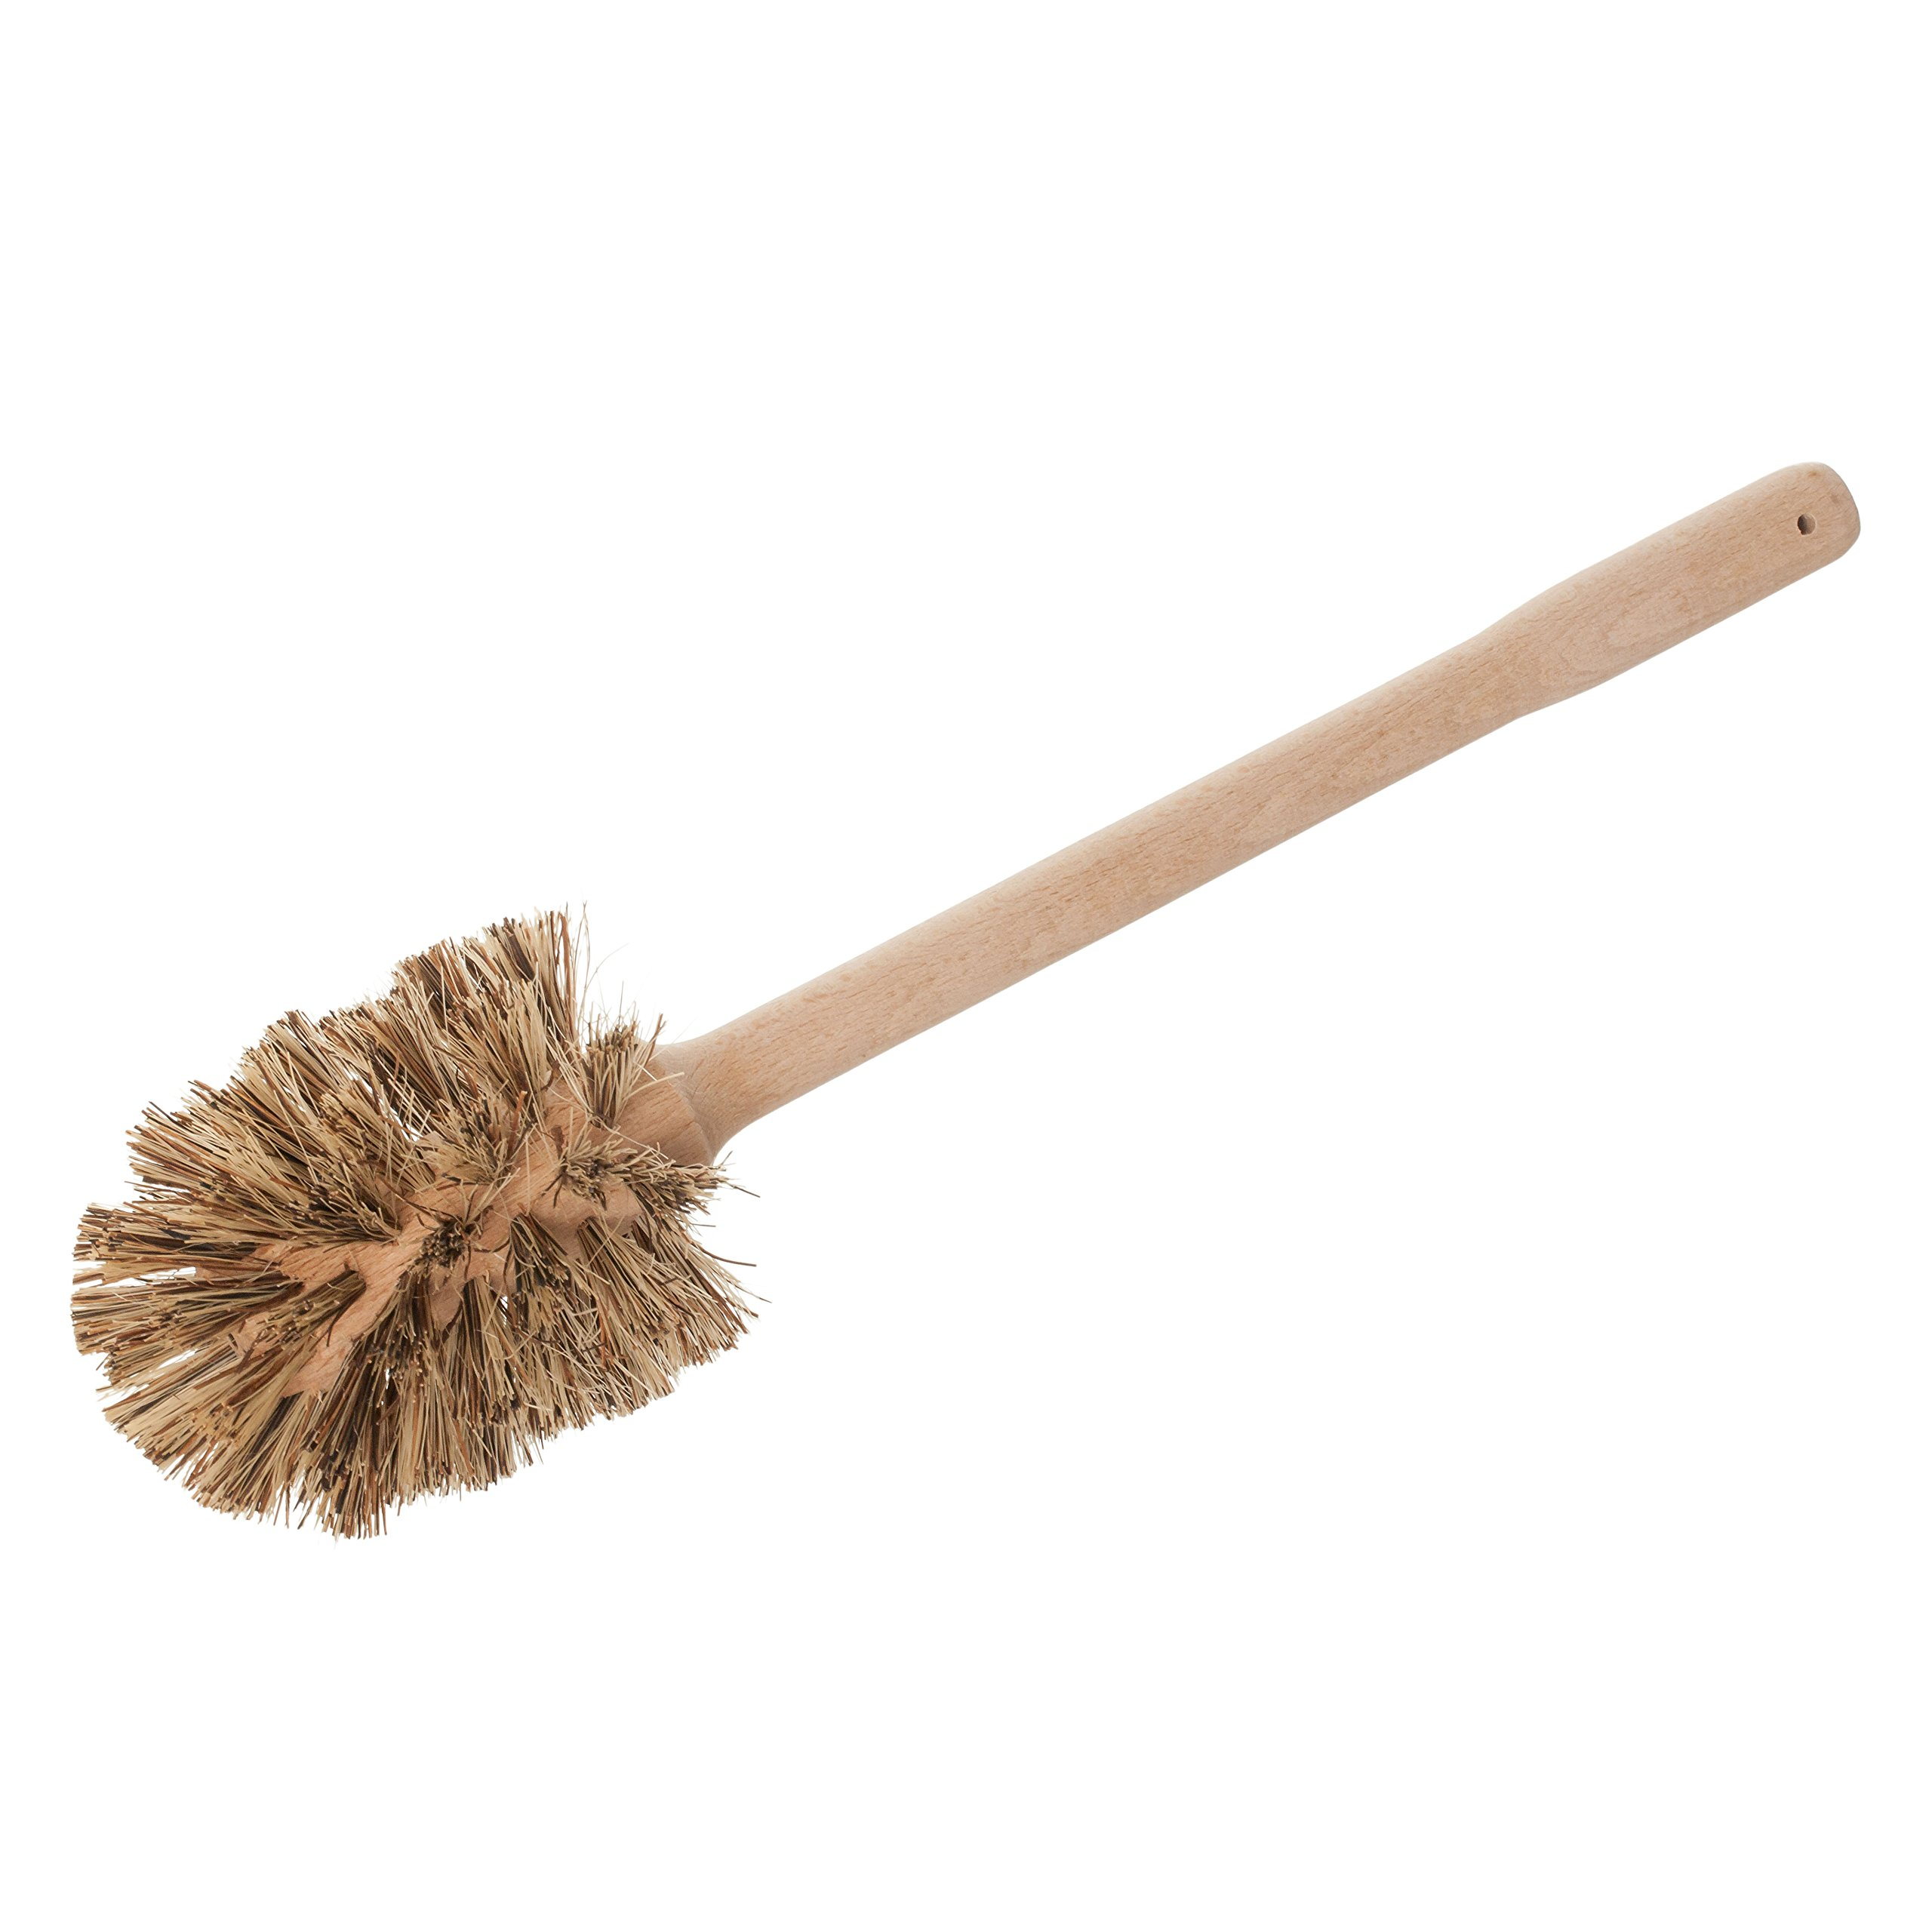 REDECKER Union Fiber Toilet Brush with Untreated Beechwood Handle, 15-3/8-Inches